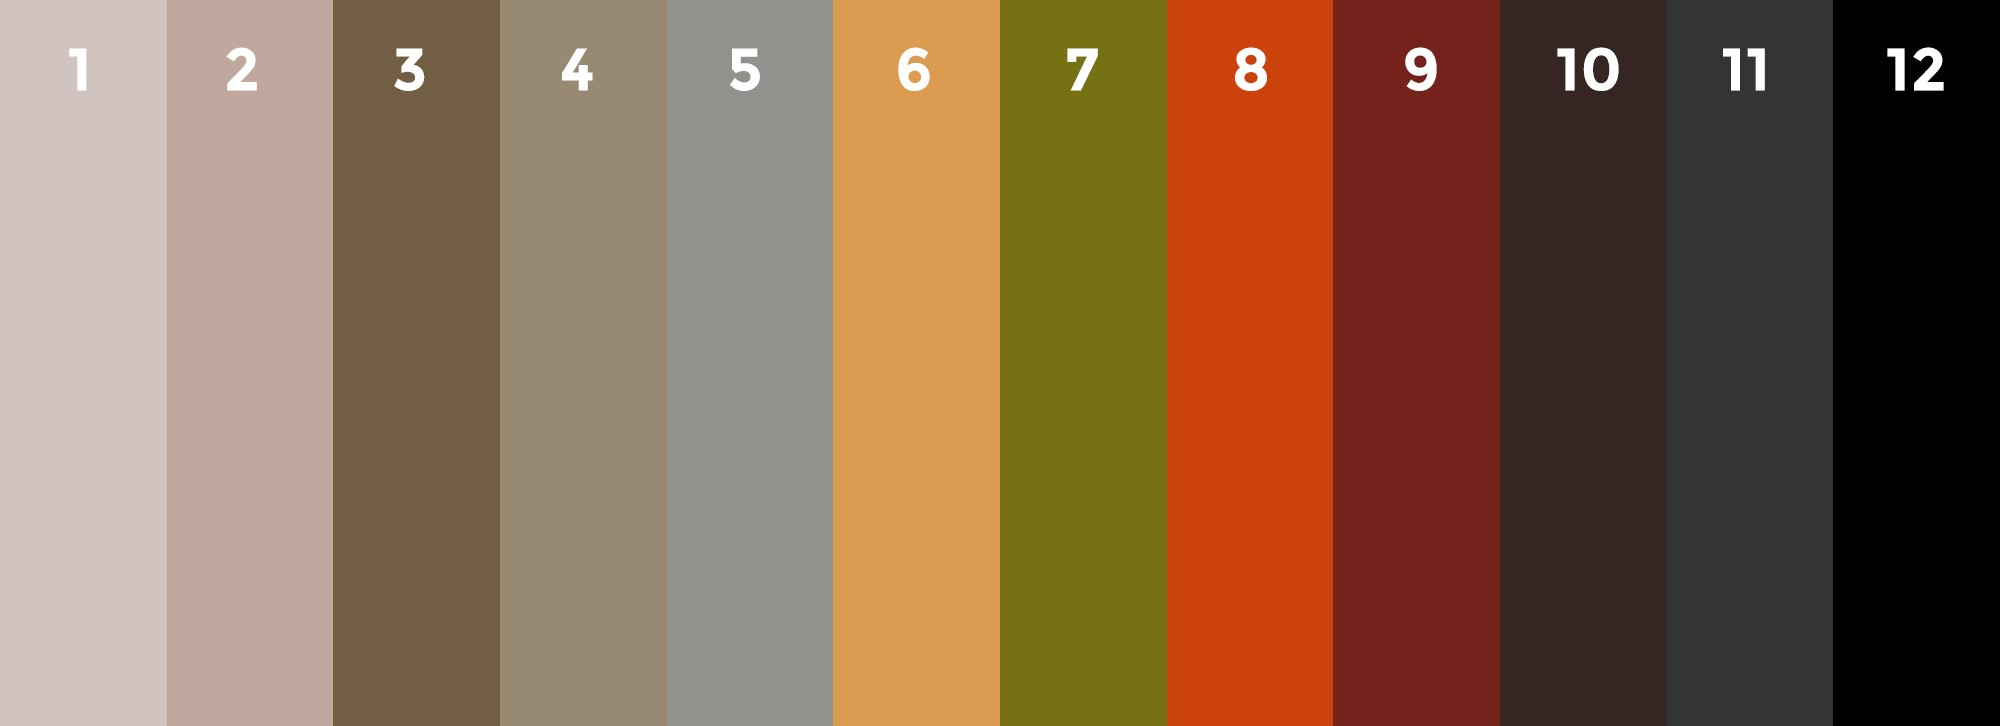 Freely choose any colors from this particular color pallet